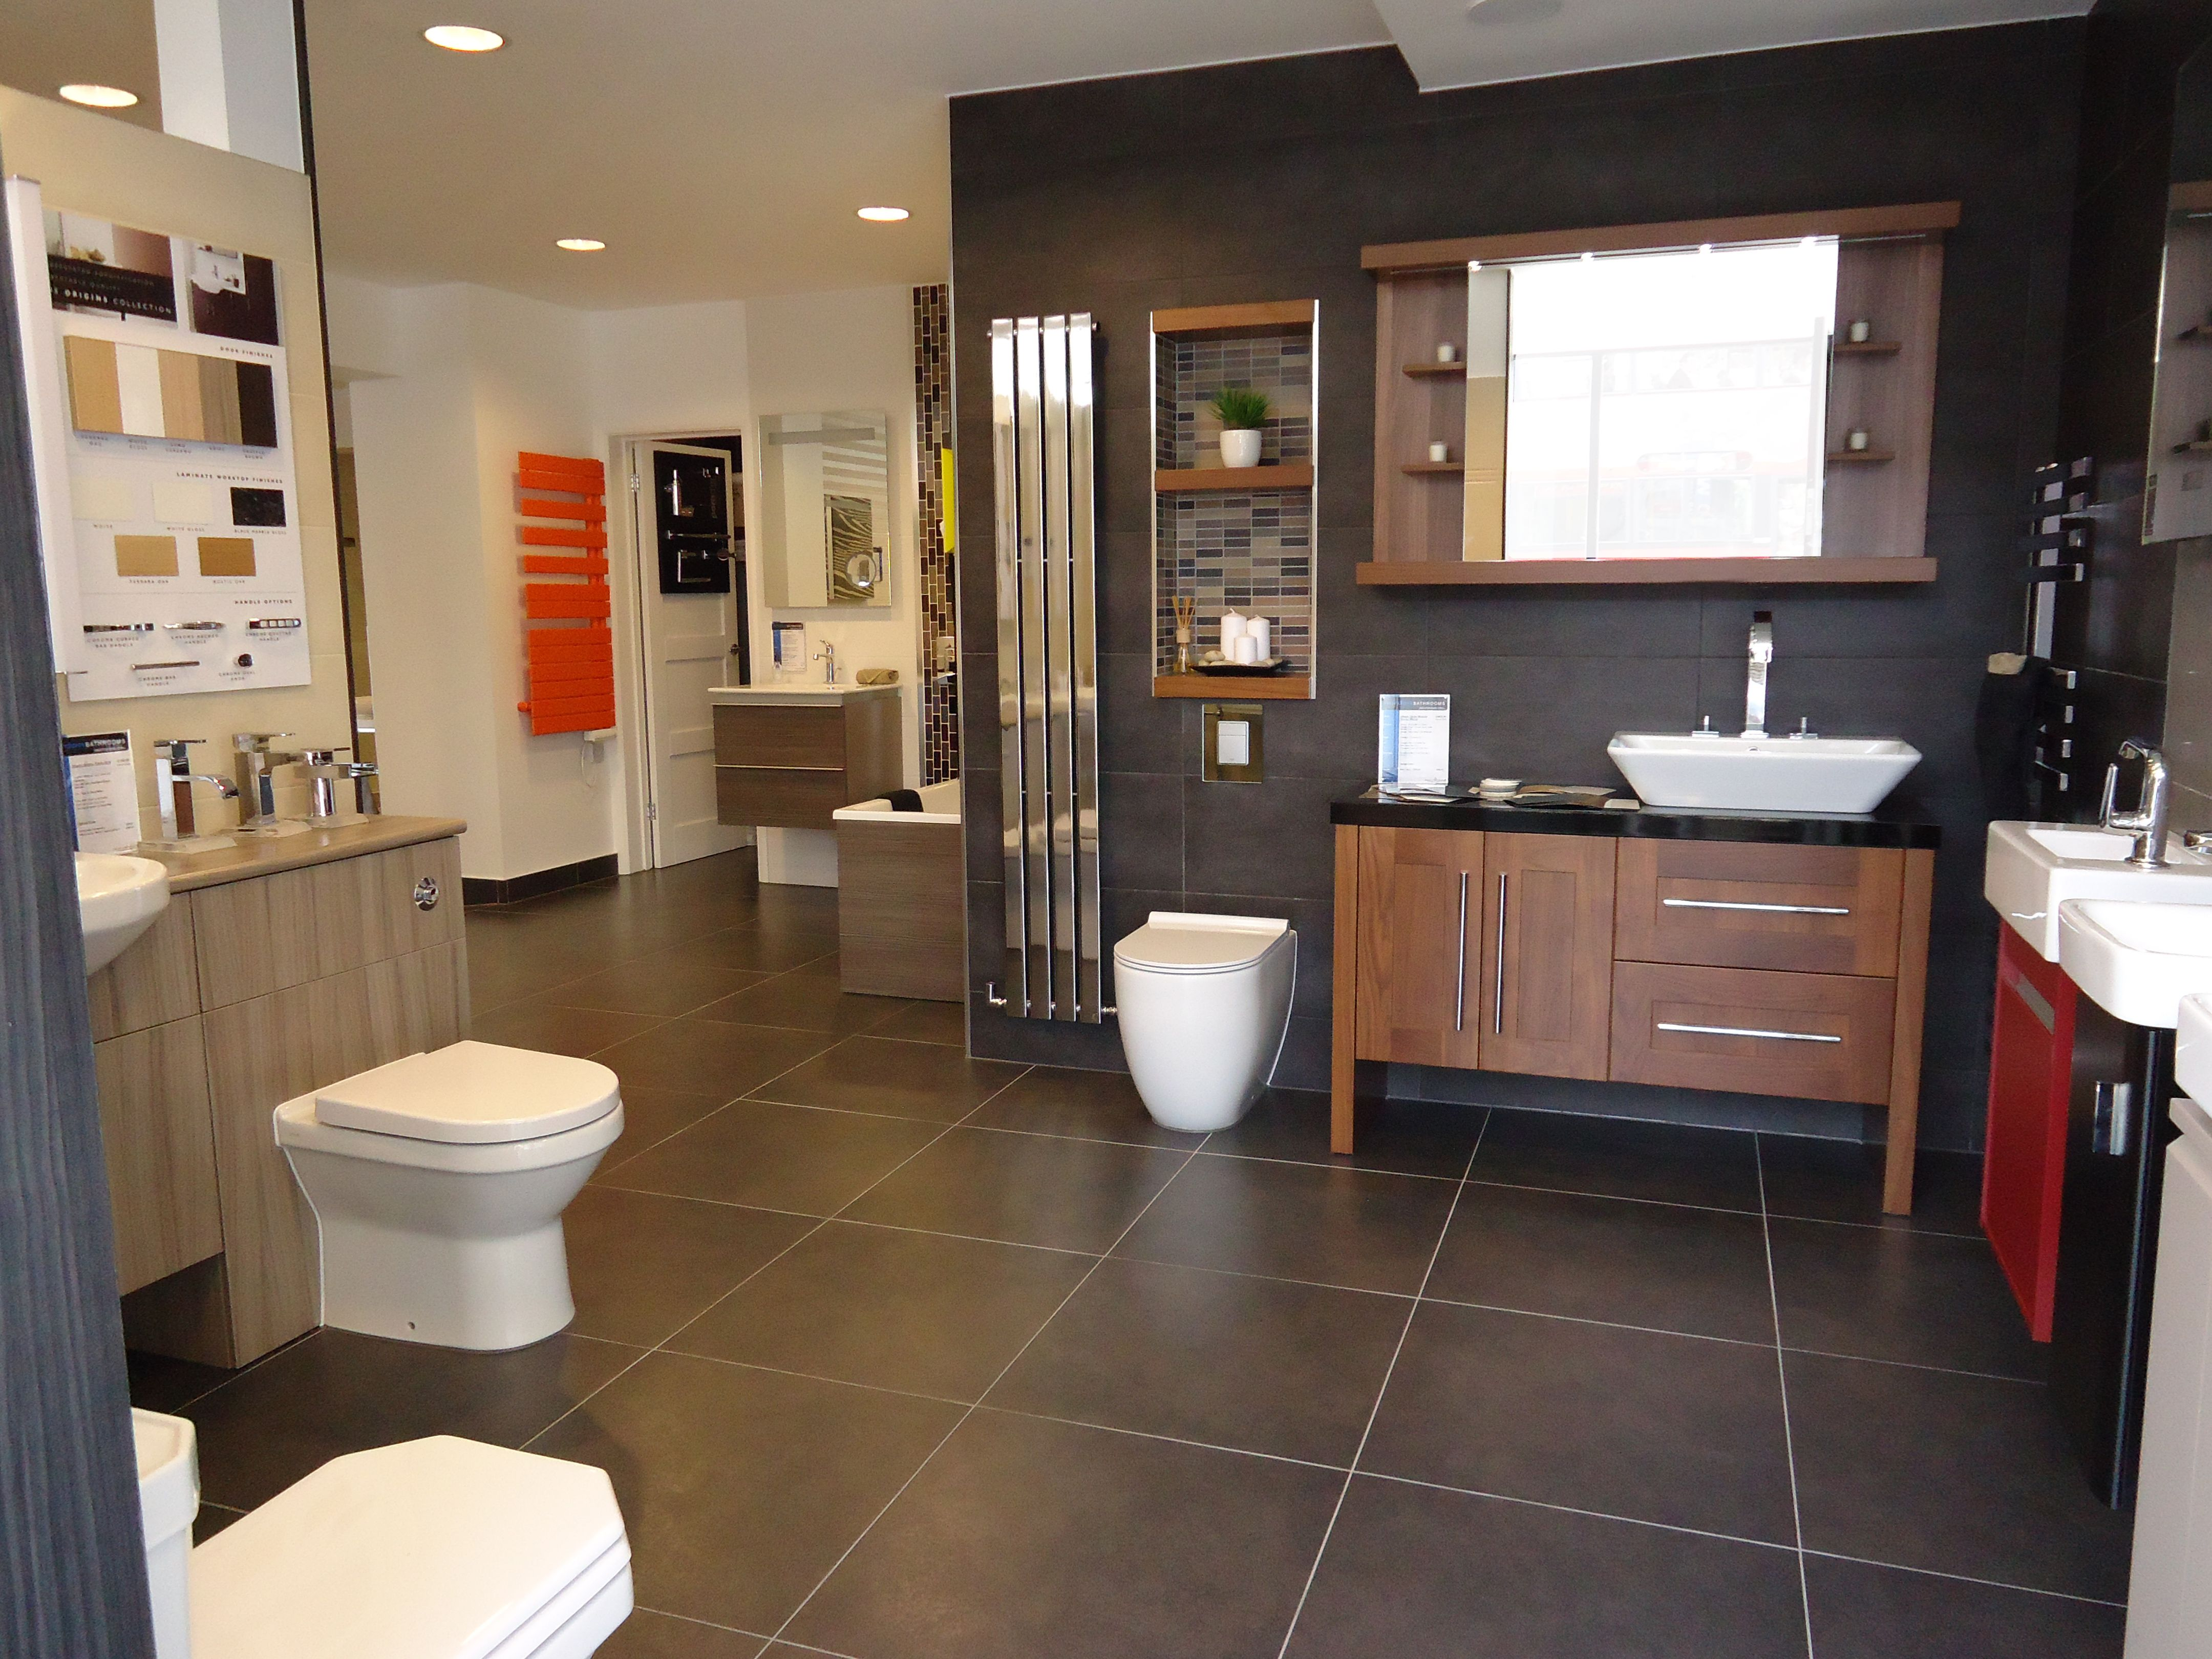 breathtaking showroom bathrooms. Bathroom  Outstanding Showroom With Norden Bathrooms Is An Established And Professional Company Also A Range Of Wall Floor Tiles Mesmerizing Trends 2017 2018 ideas Pinterest tiling